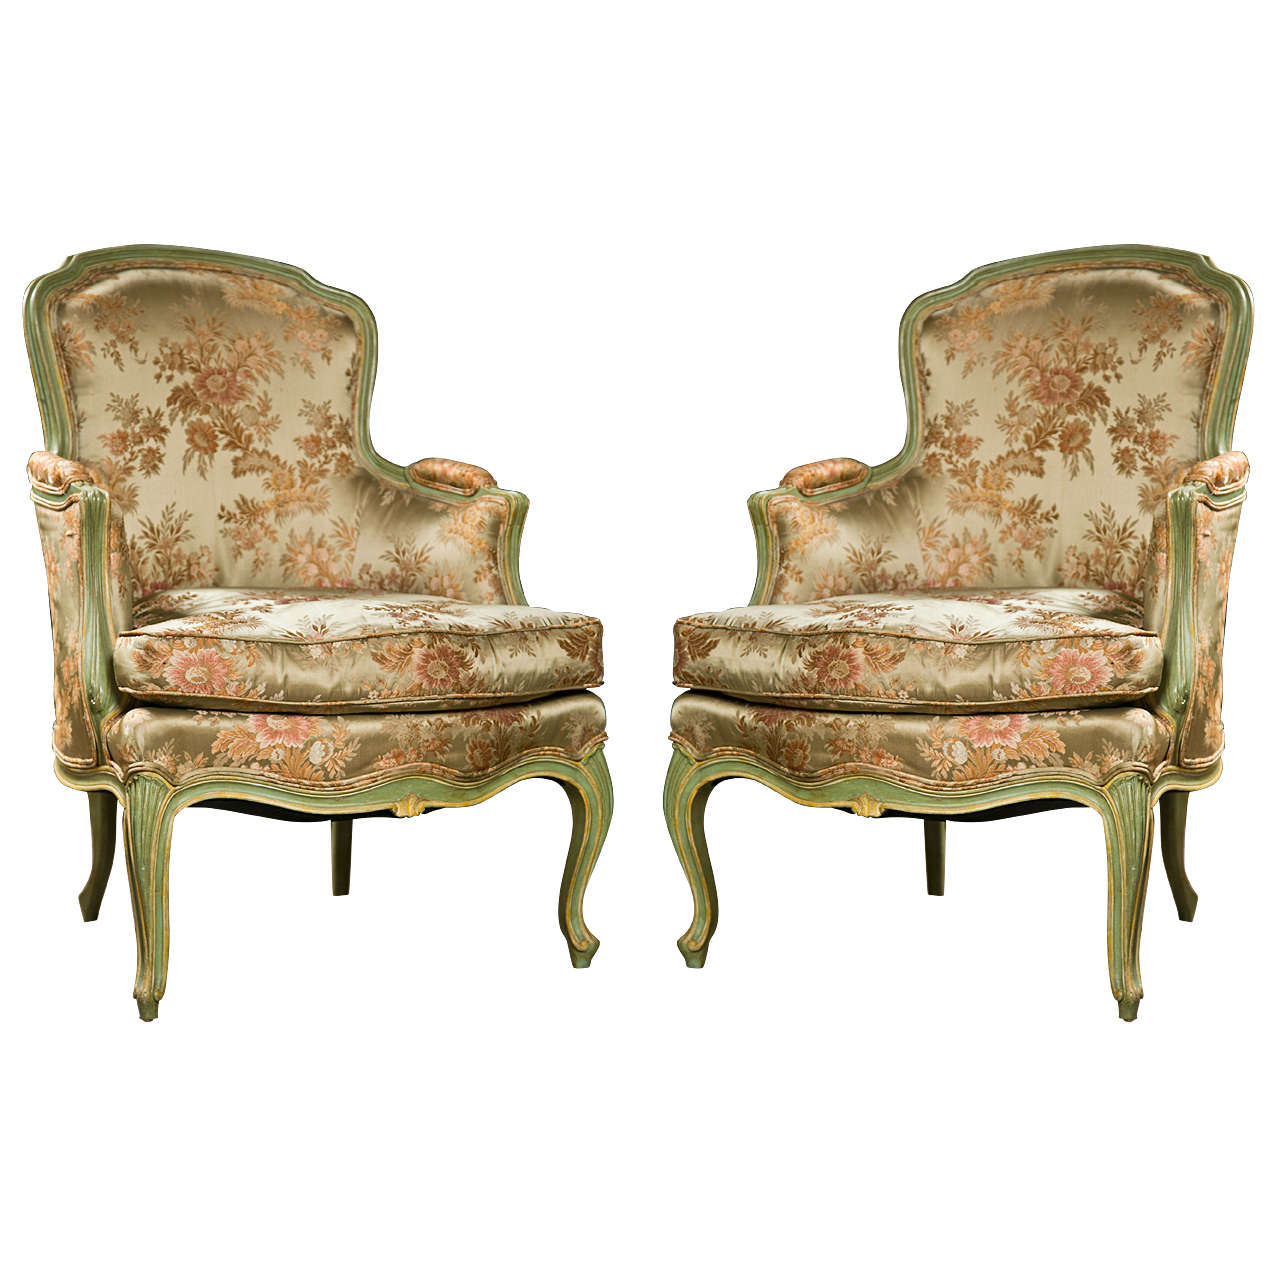 bergere chairs for sale big and tall executive chair leather pair of french louis xvi style at 1stdibs